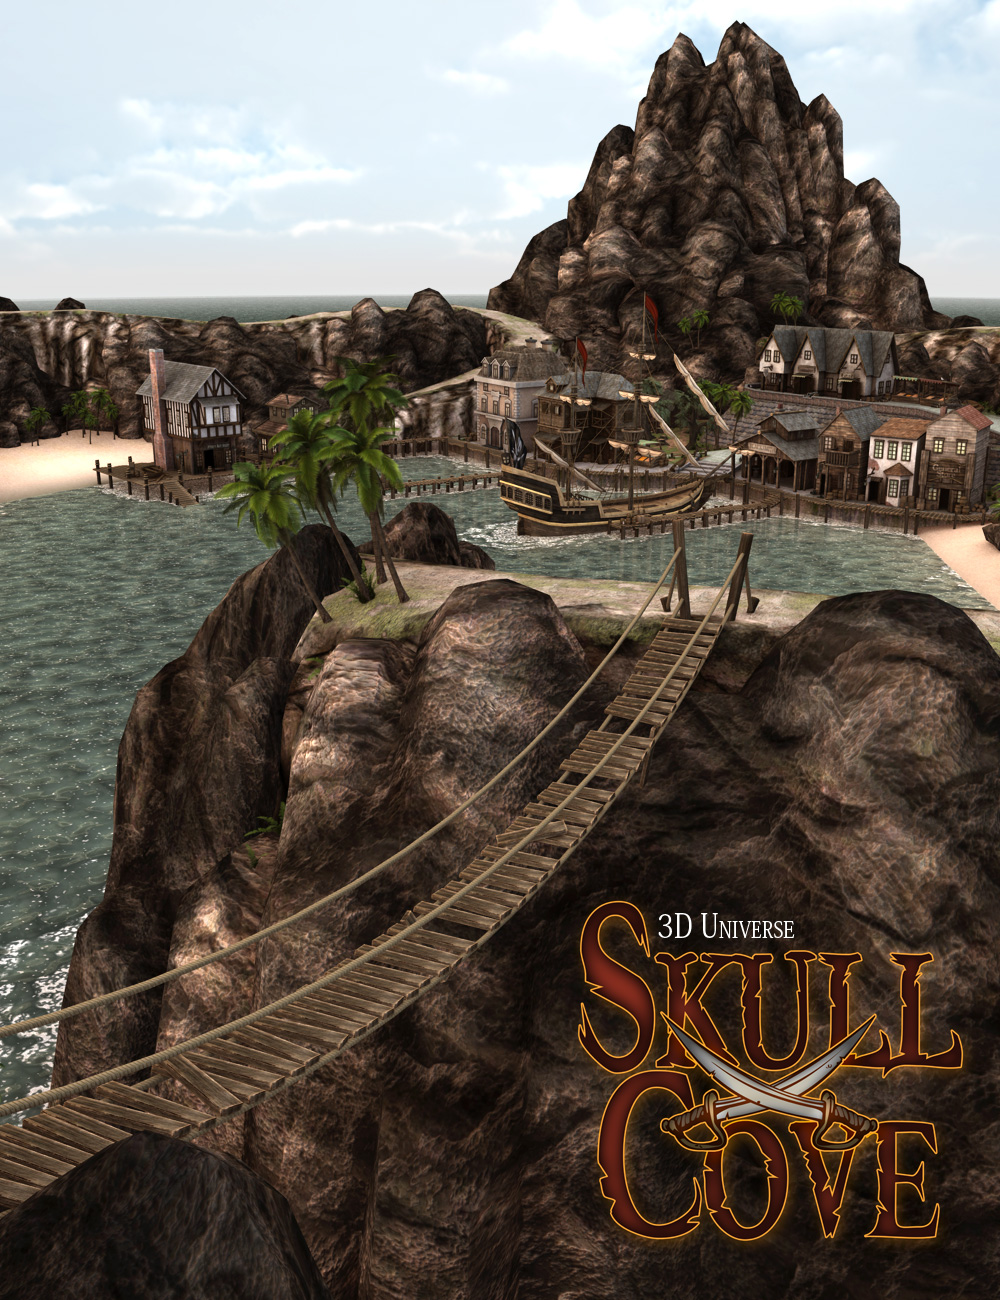 Skull Cove Complete by: 3D Universe, 3D Models by Daz 3D